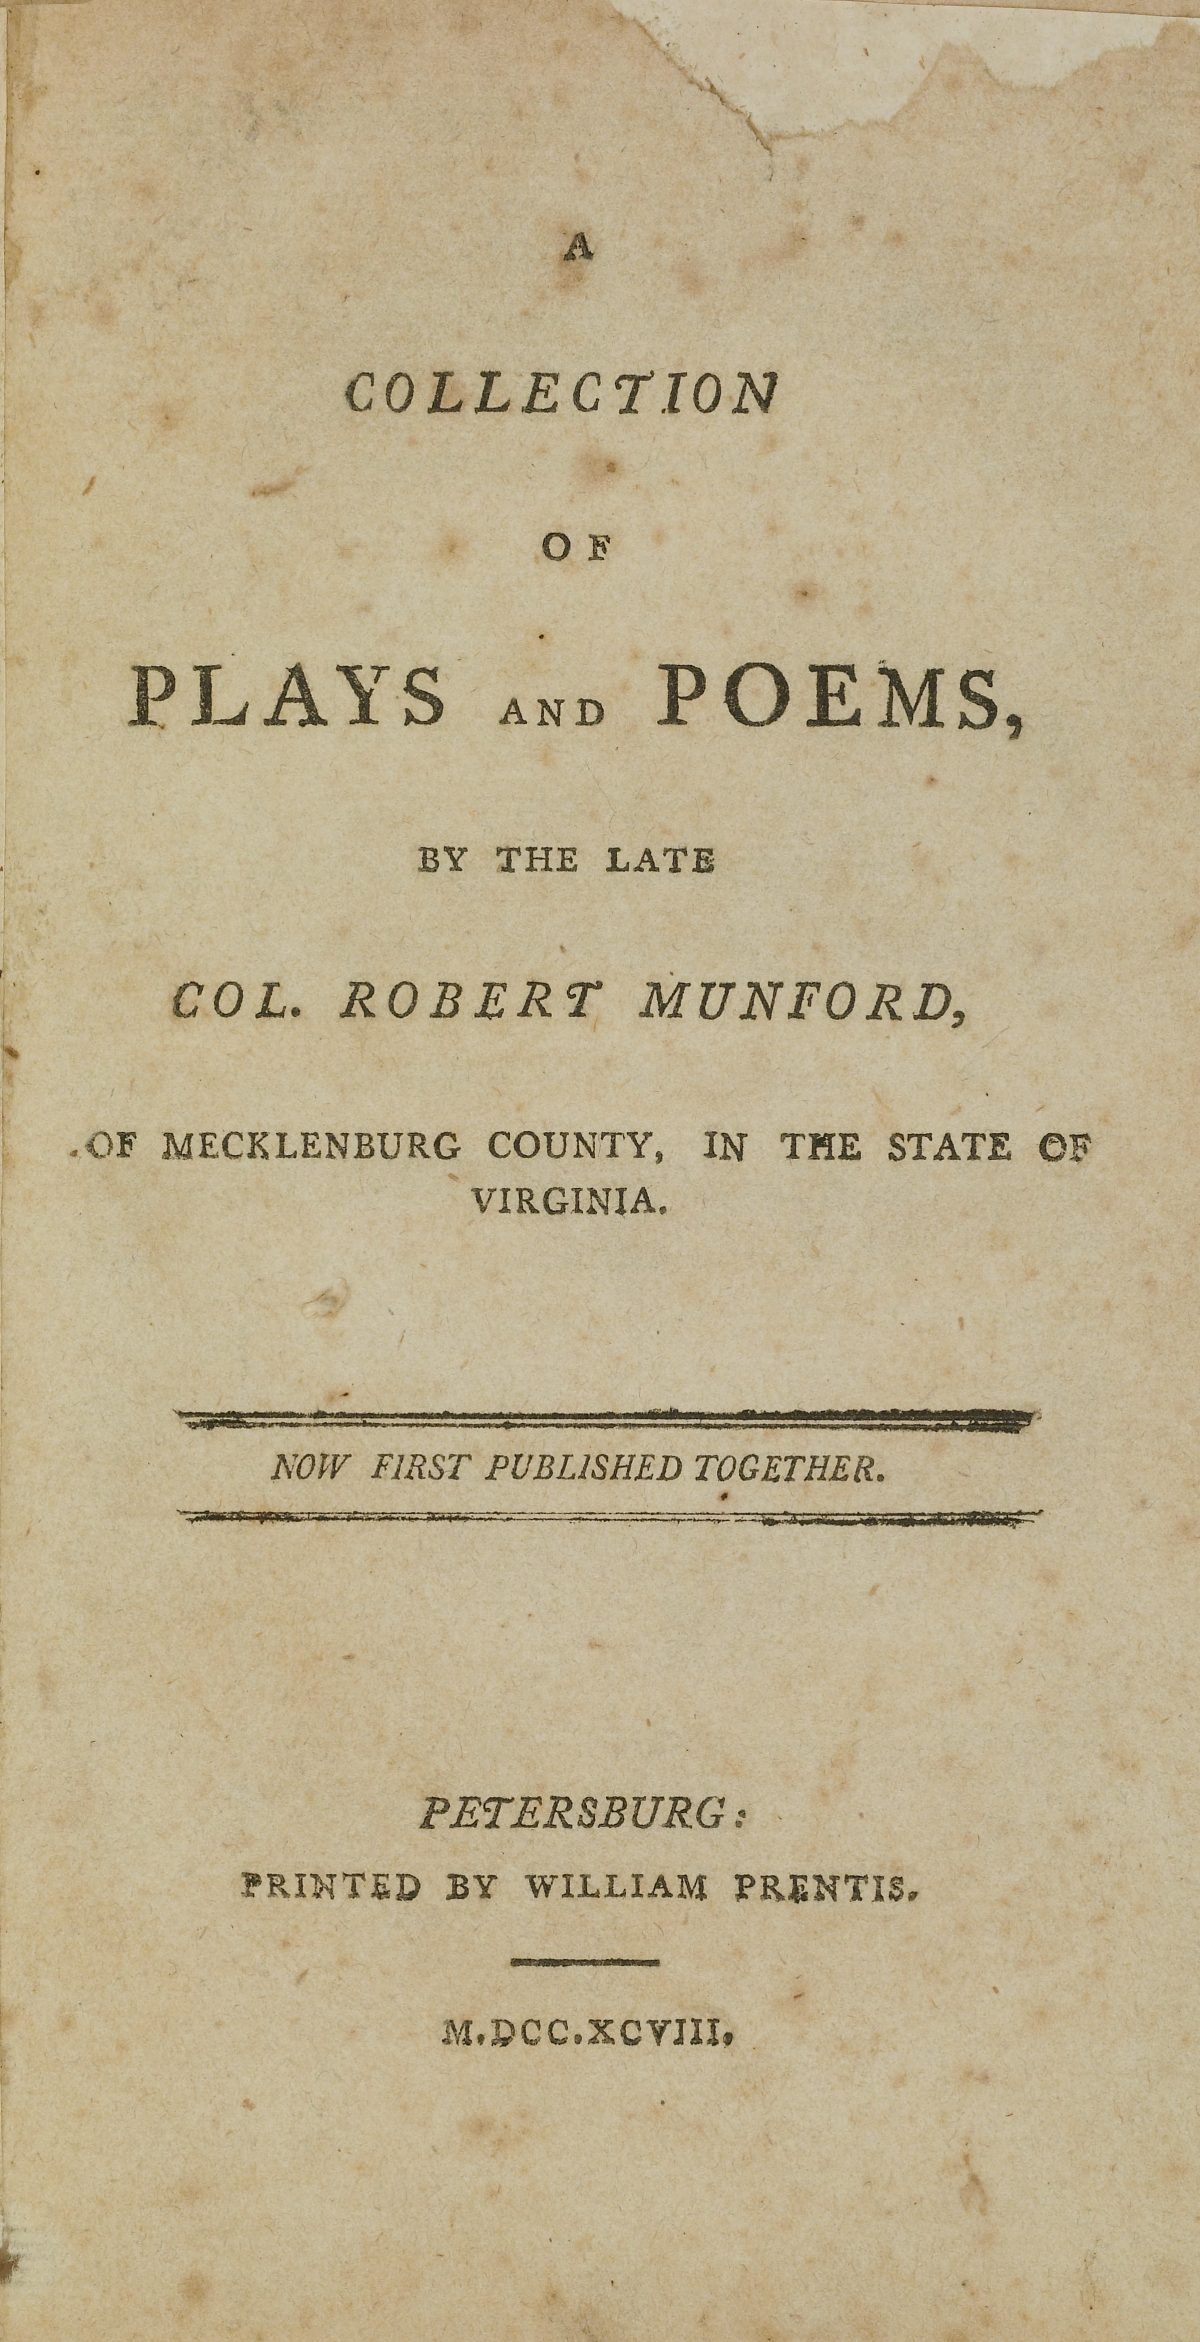 A Collection of Plays and Poems